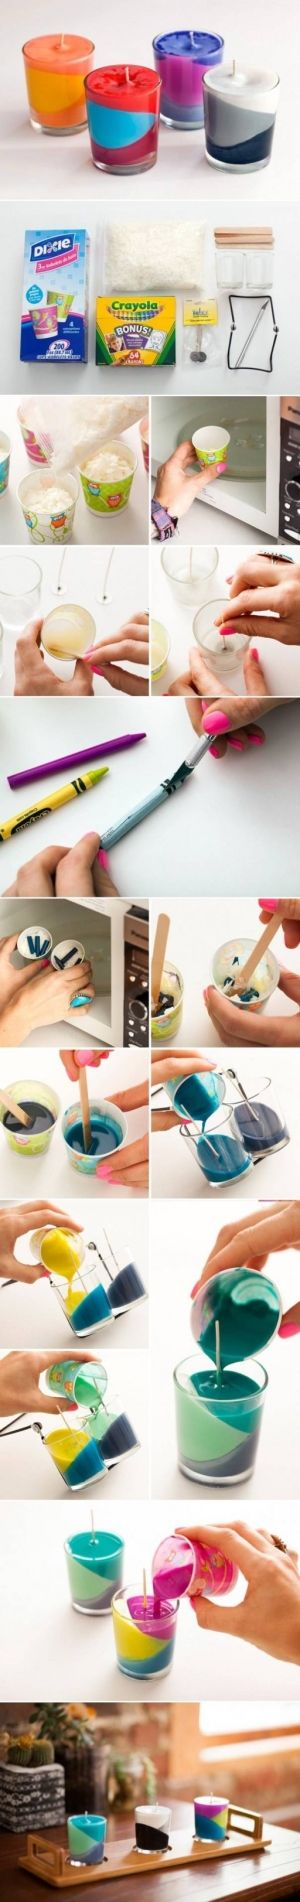 How to make Multi Color Candle step by step DIY tutorial instructions, How to, how to do, diy instructions, crafts, do it yourself, diy webs by Mary Smith fSesz